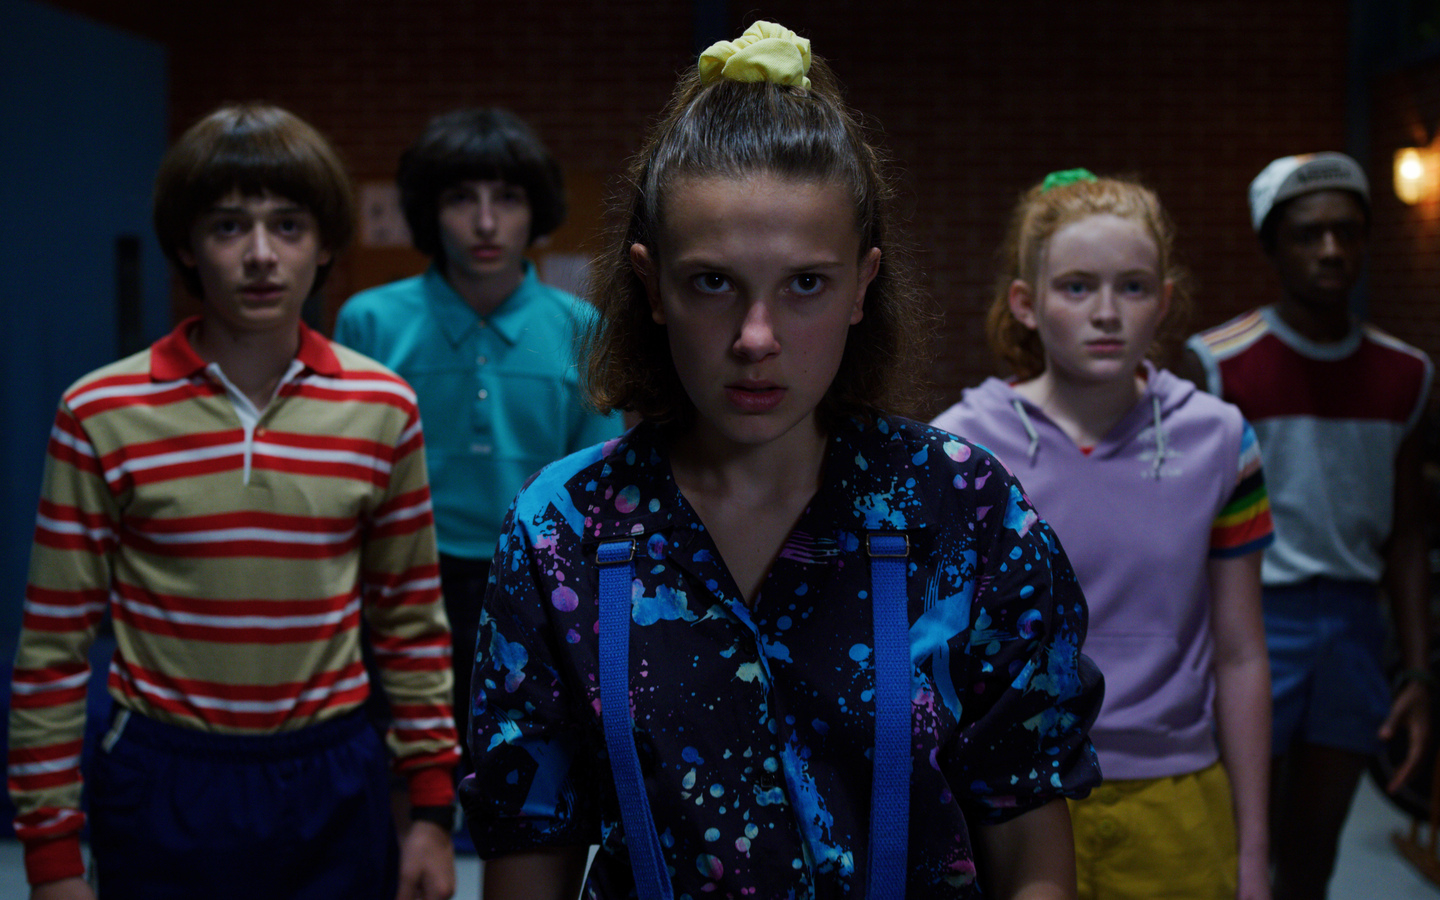 stranger-things-season-3-neflix-5k-ep.jpg